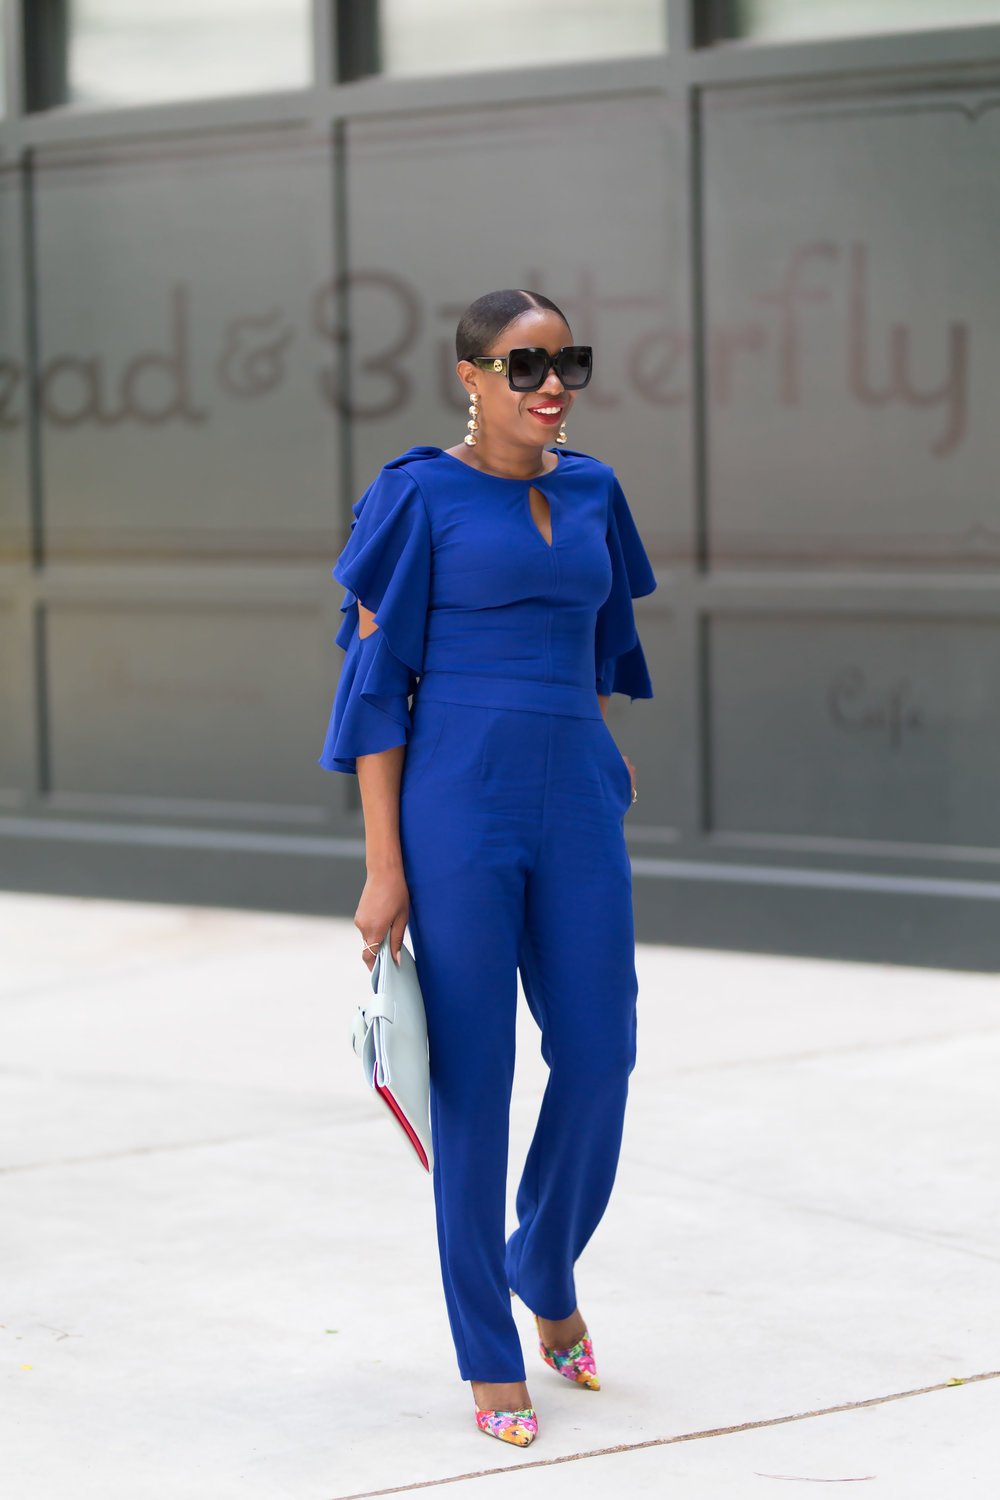 FASHION BLOGGER WEARING BLUE JUMPSUIT.jpg